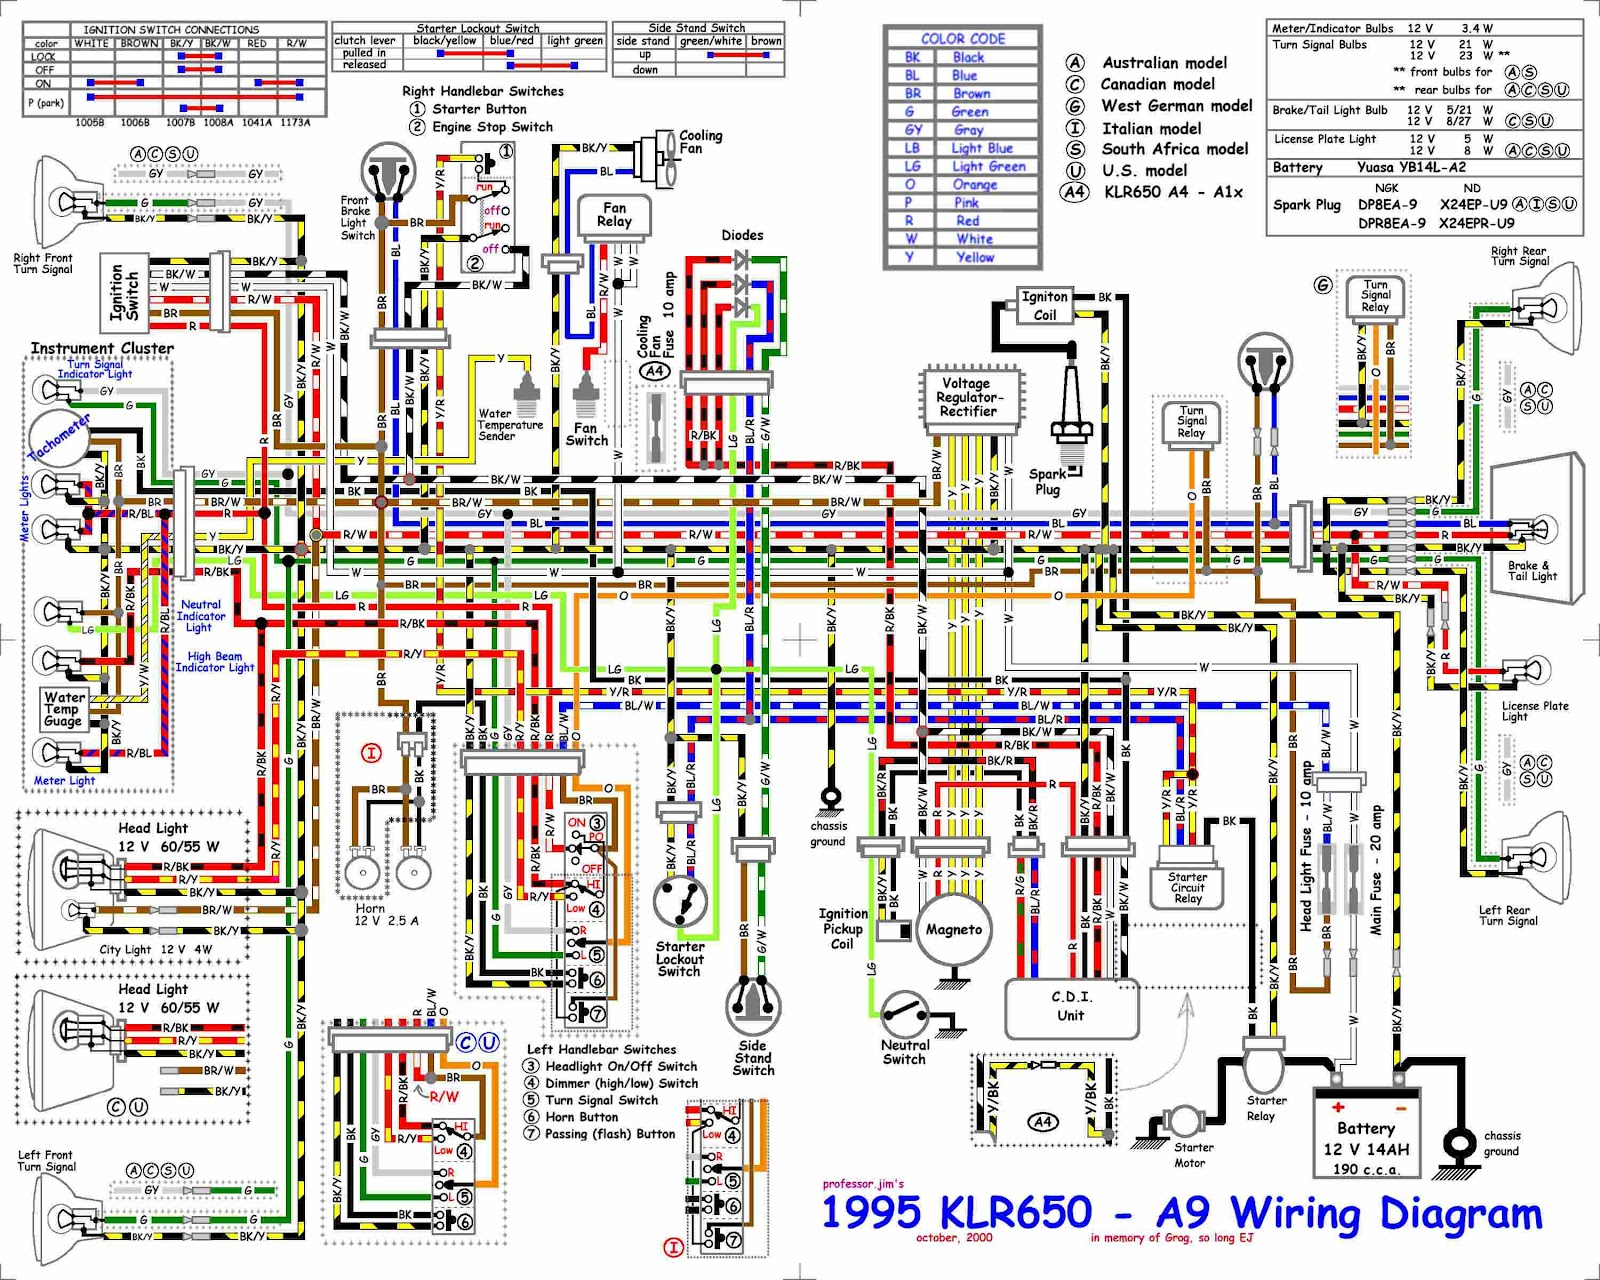 Kawasaki Klr650 A9 1995 Motorcycle Electrical Wiring Diagram